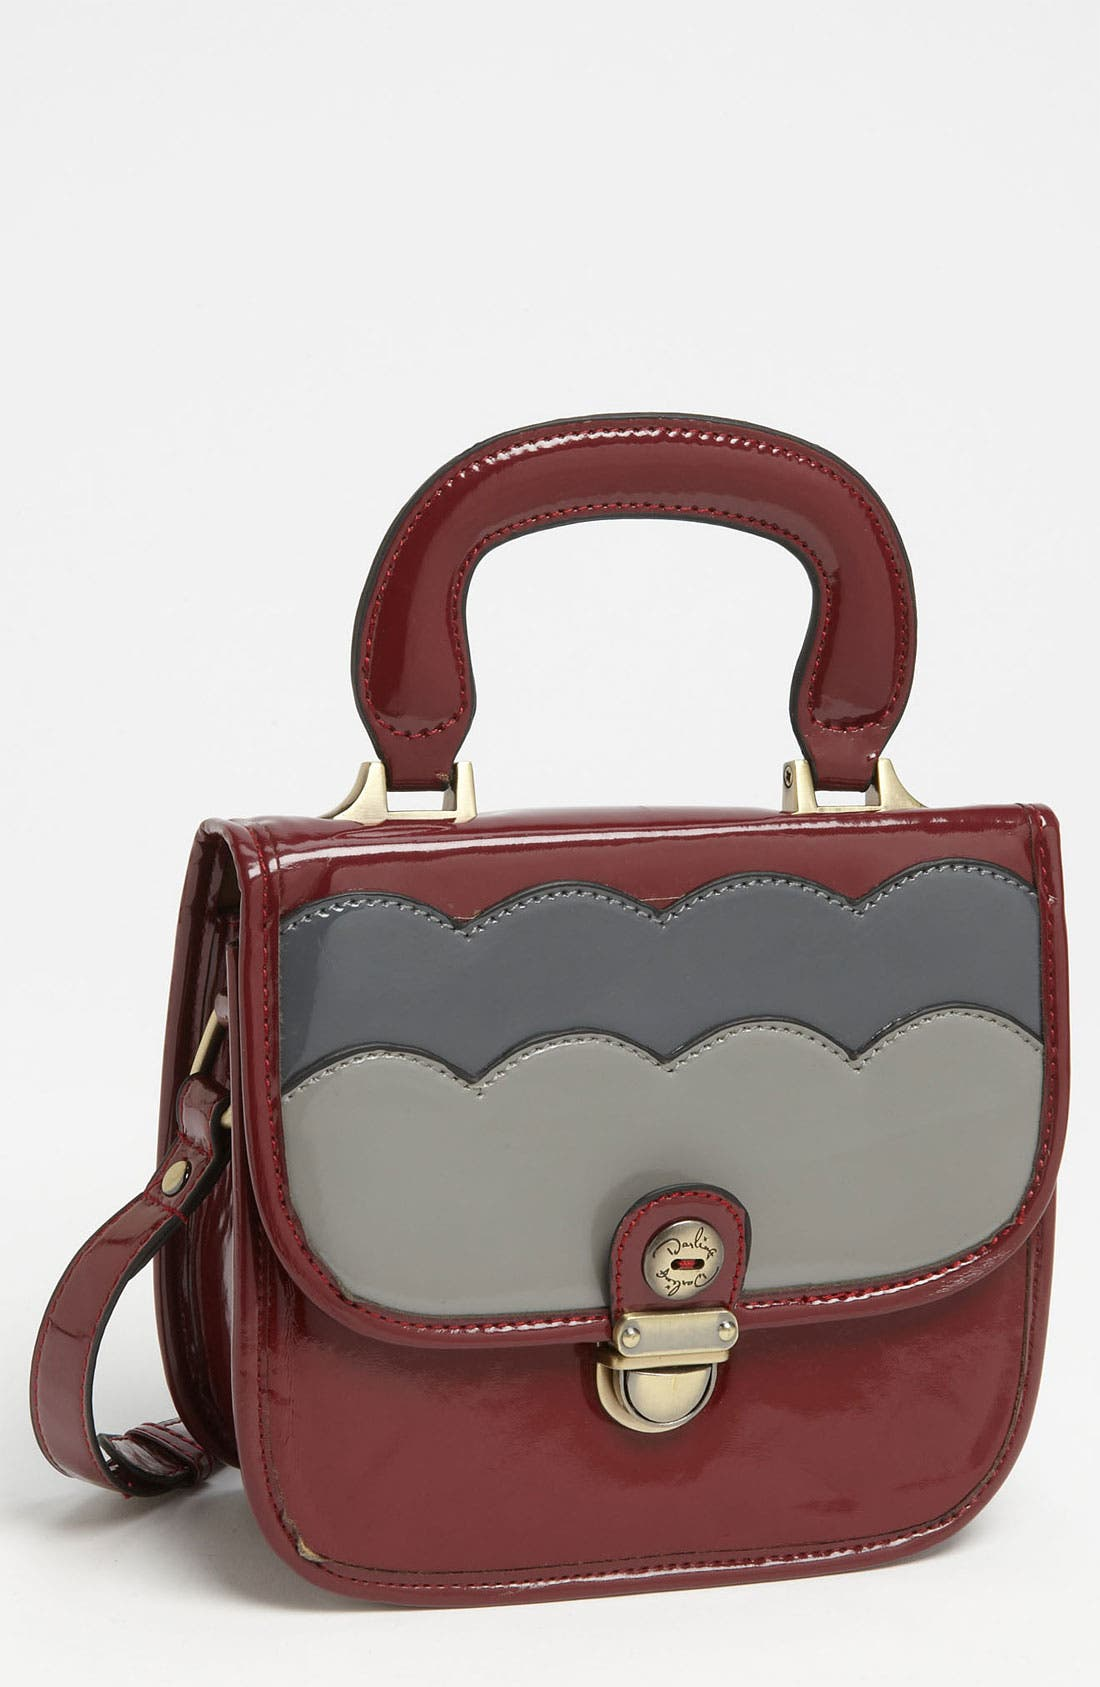 Alternate Image 1 Selected - Darling 'Whitney' Top Handle Crossbody Satchel